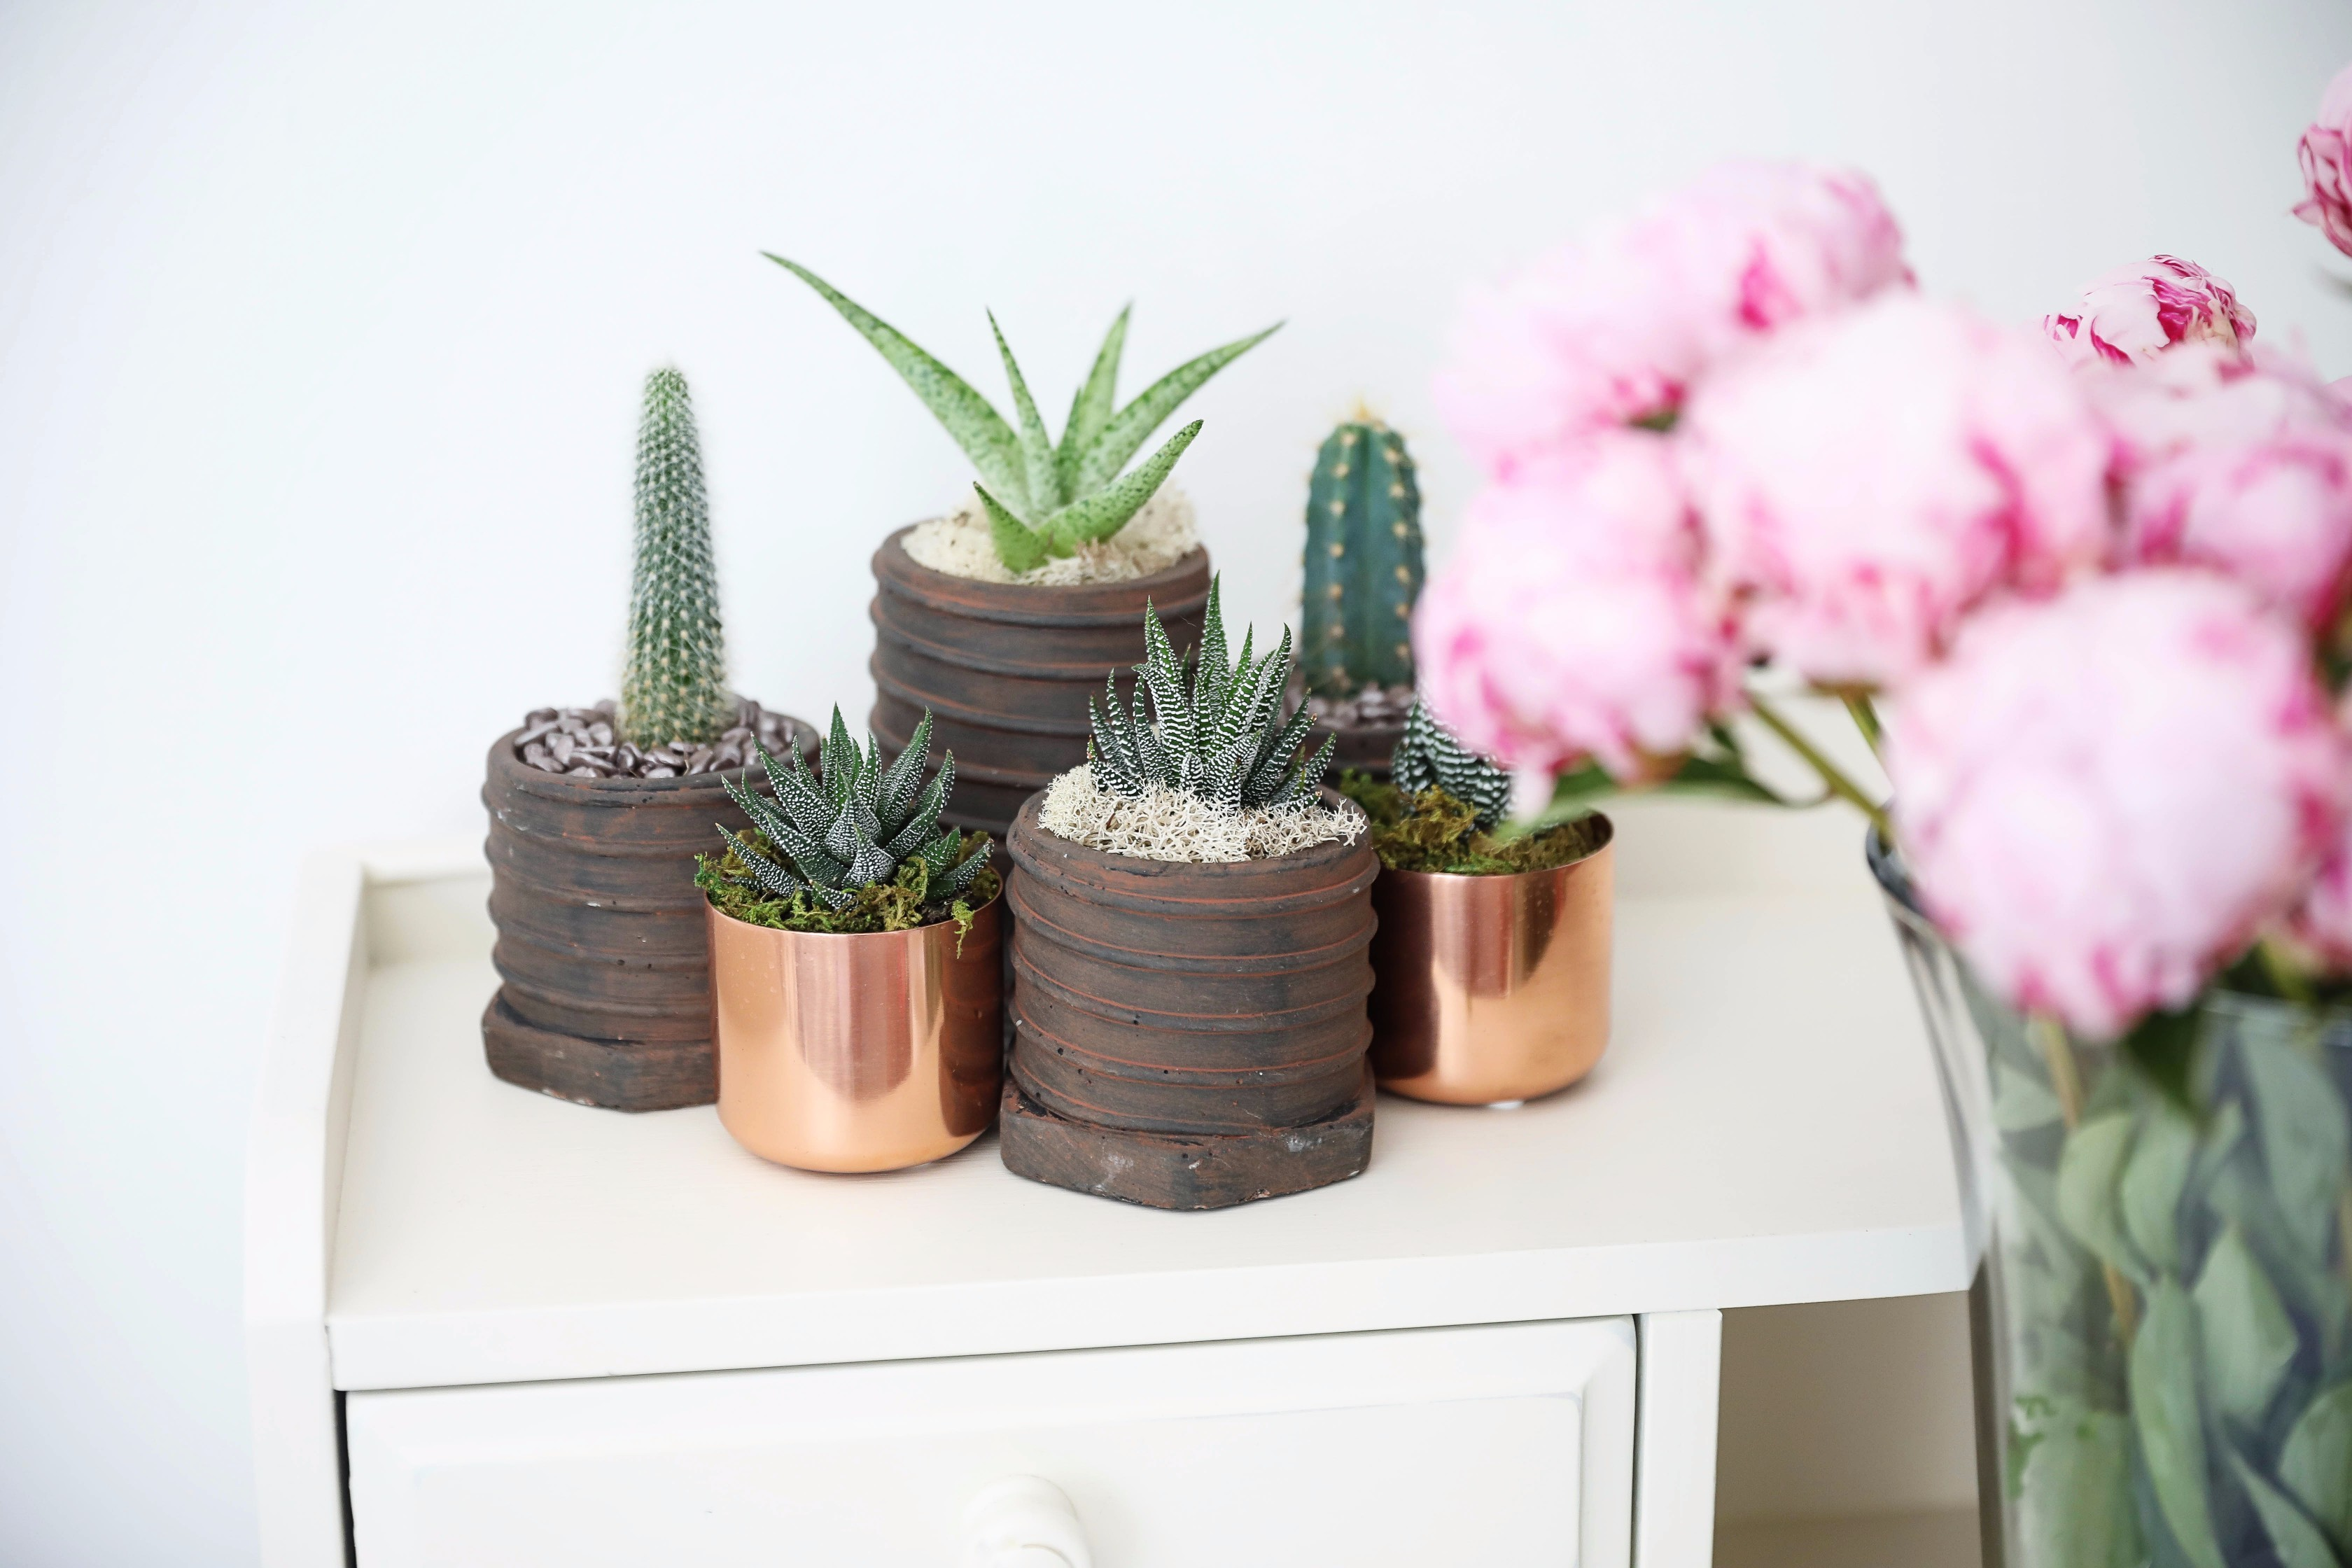 Pink peonies, cactus and succulents, and palm leaf calendar on June favorites by fashion and lifestyle blogger lauren lindmark on daily dose of charm